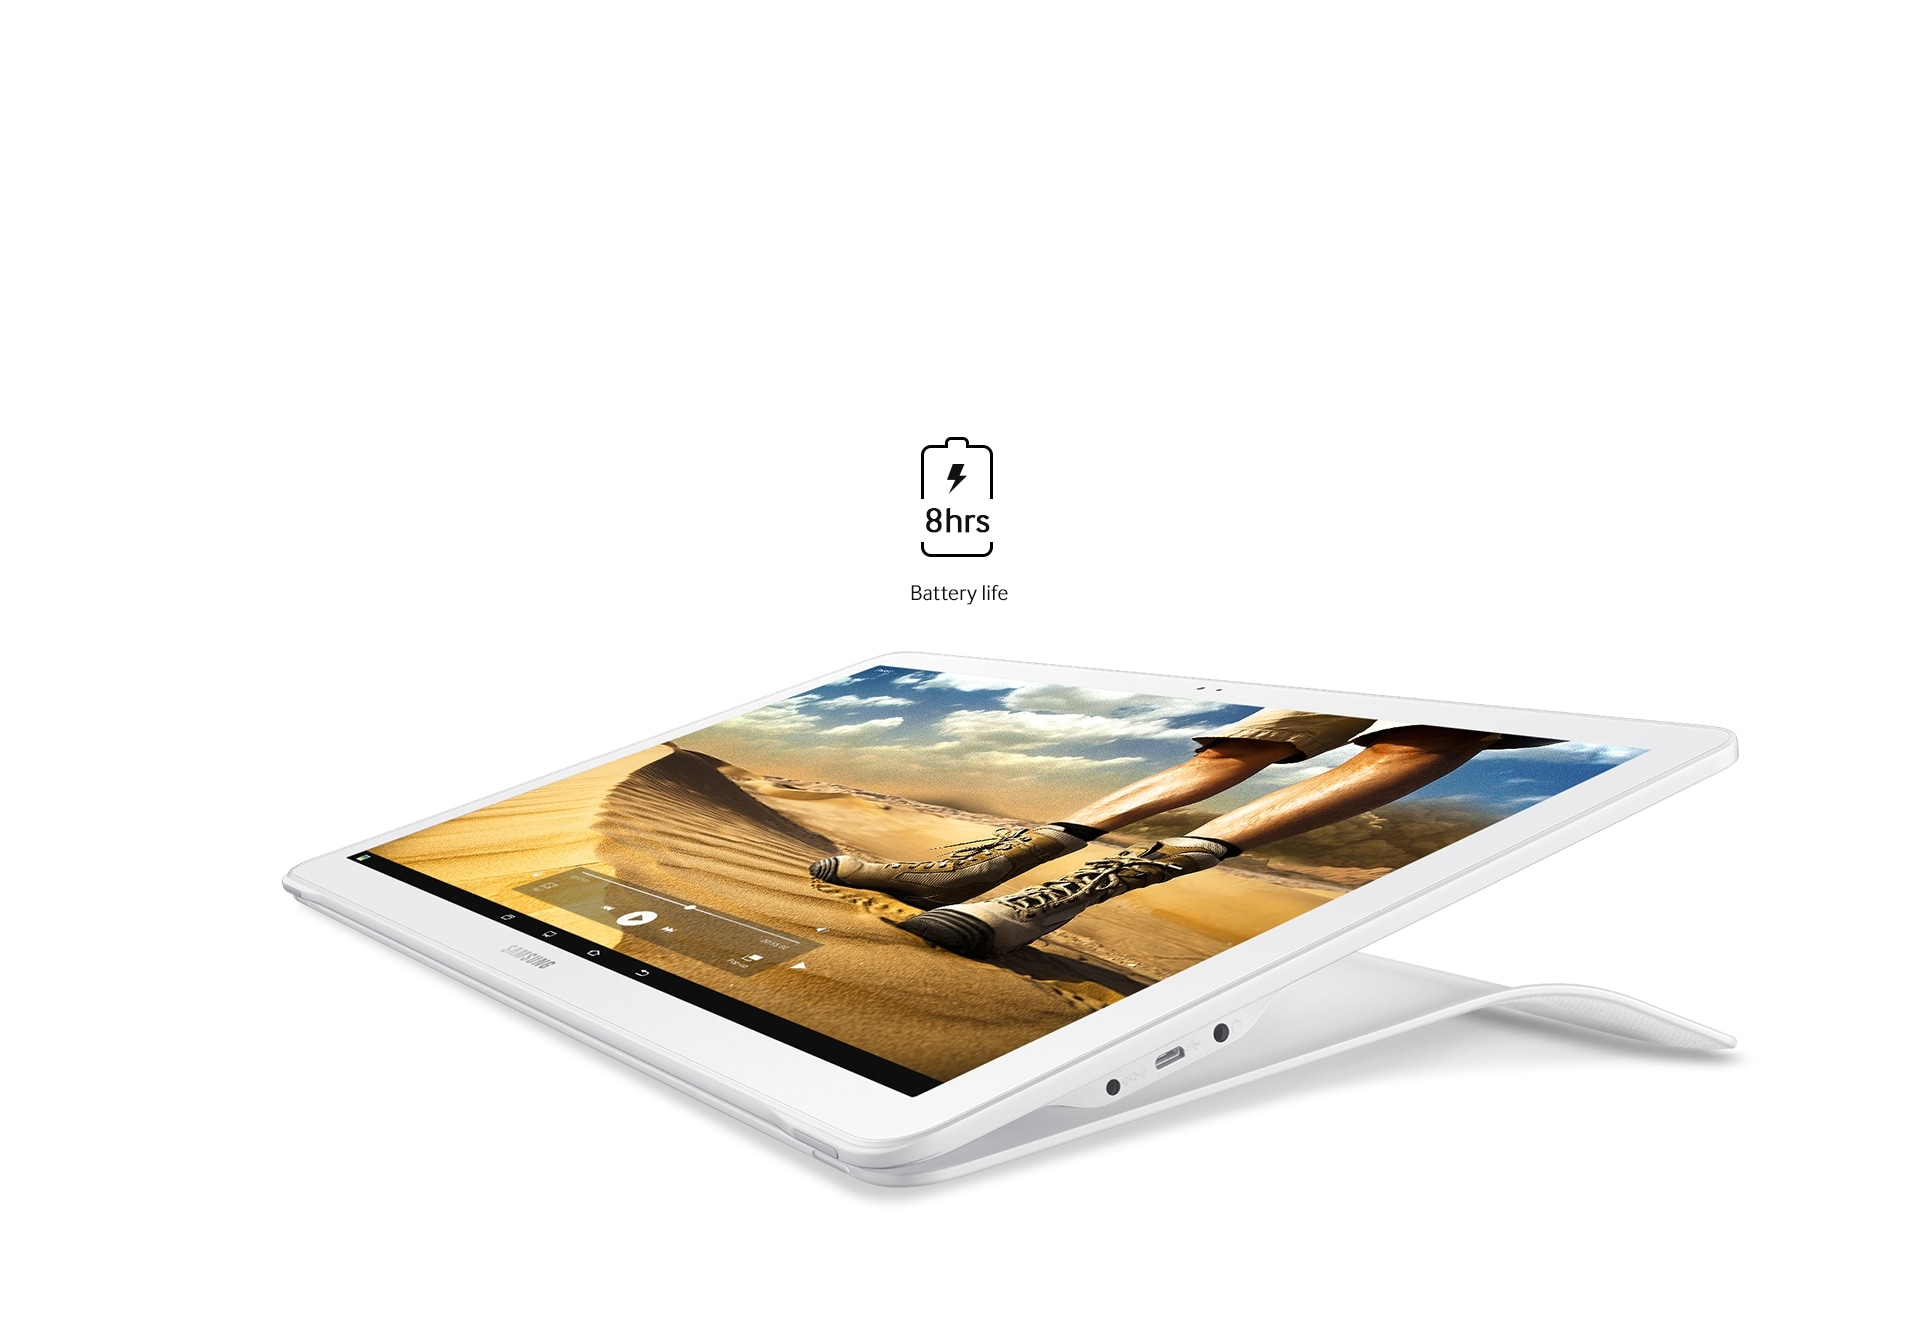 An image and a battery icon showing how the Galaxy View can be used for up to eight hours.